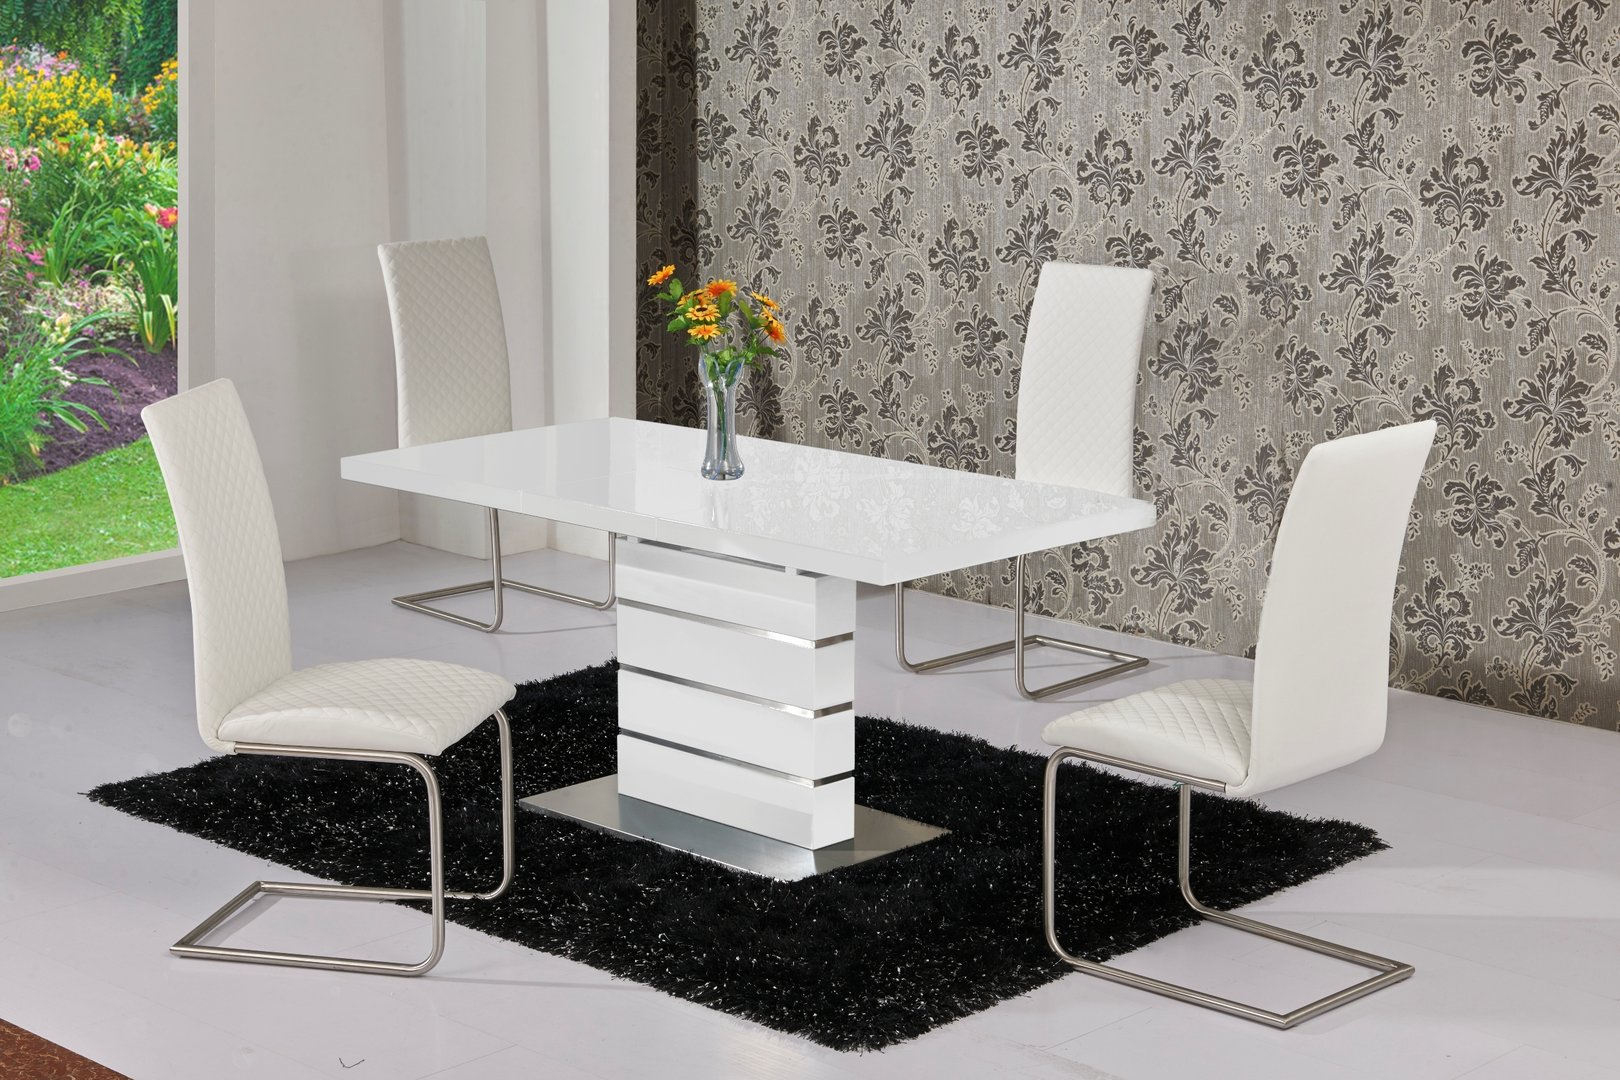 Extendable White High Gloss Dining Table And 4 White Chairs